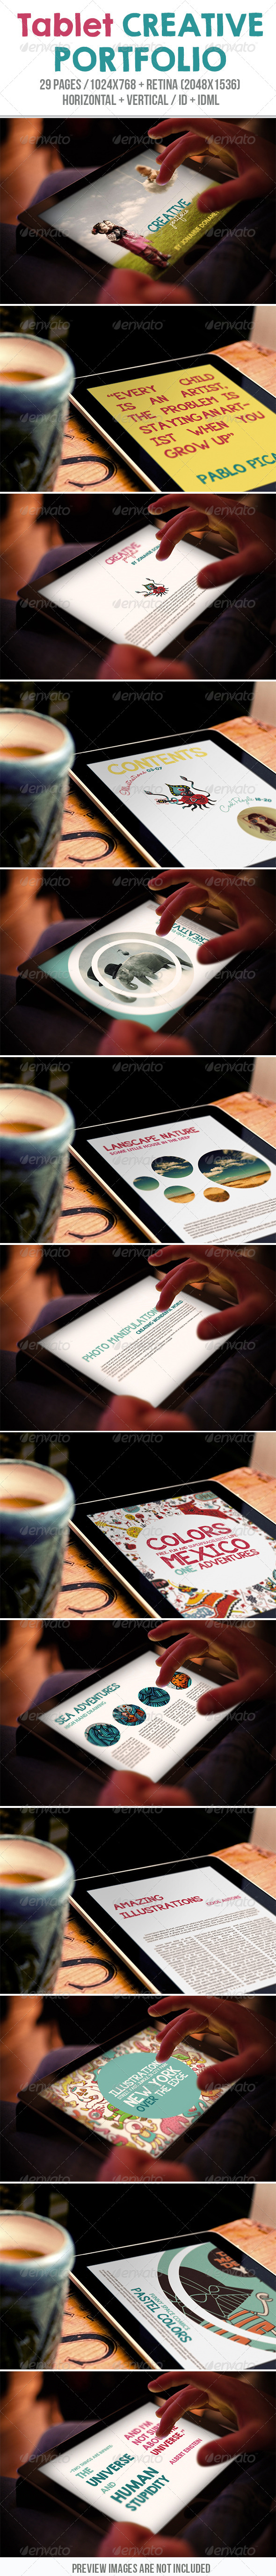 GraphicRiver Tablet Creative Portfolio 7819792